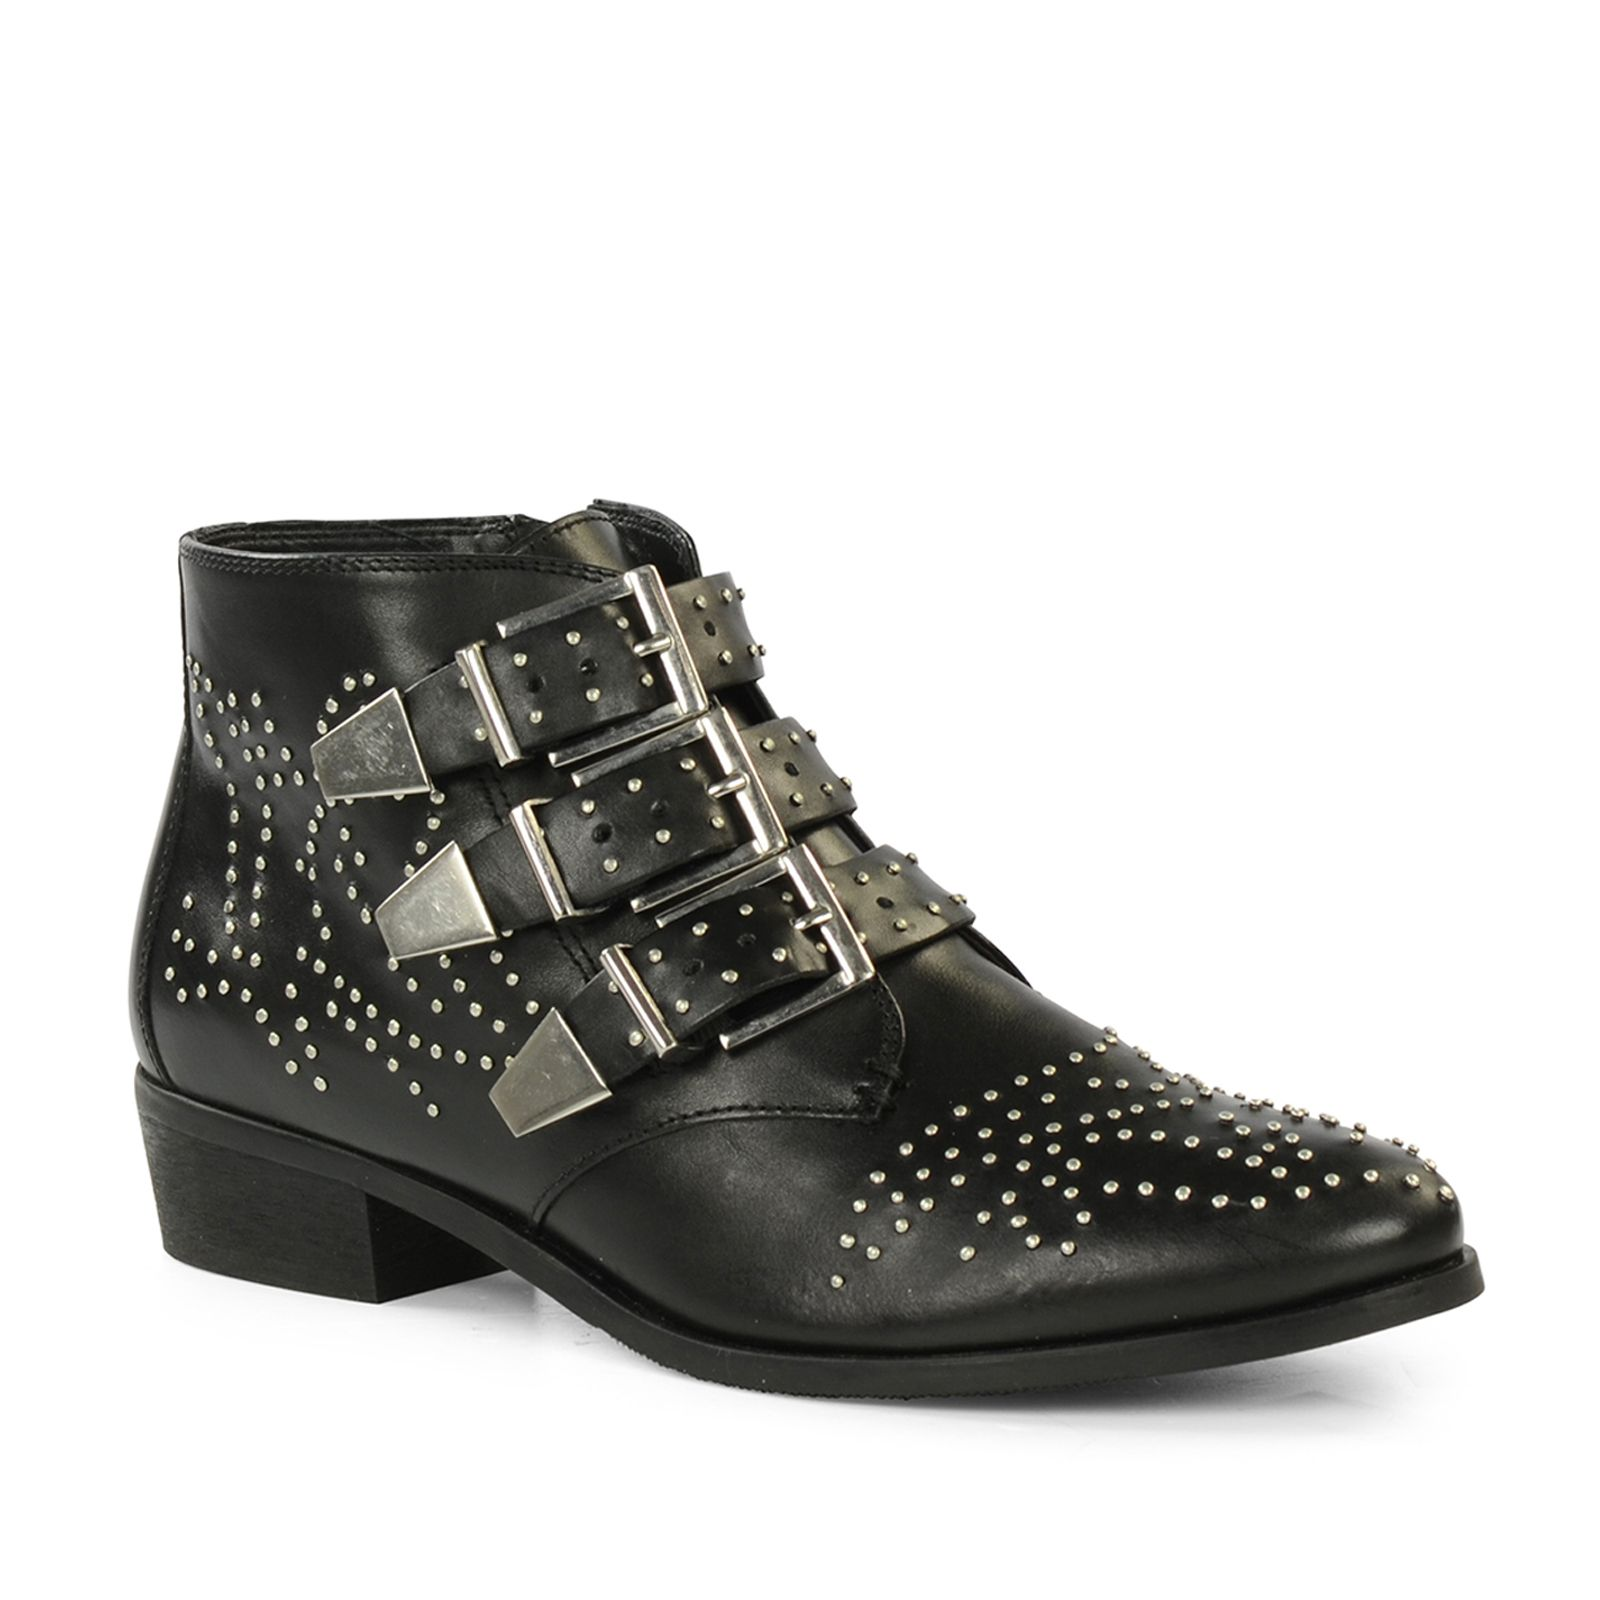 efa404687b3 Zwarte buckle boots met studs in 2019 | shoes - Buckle boots, Shoes ...